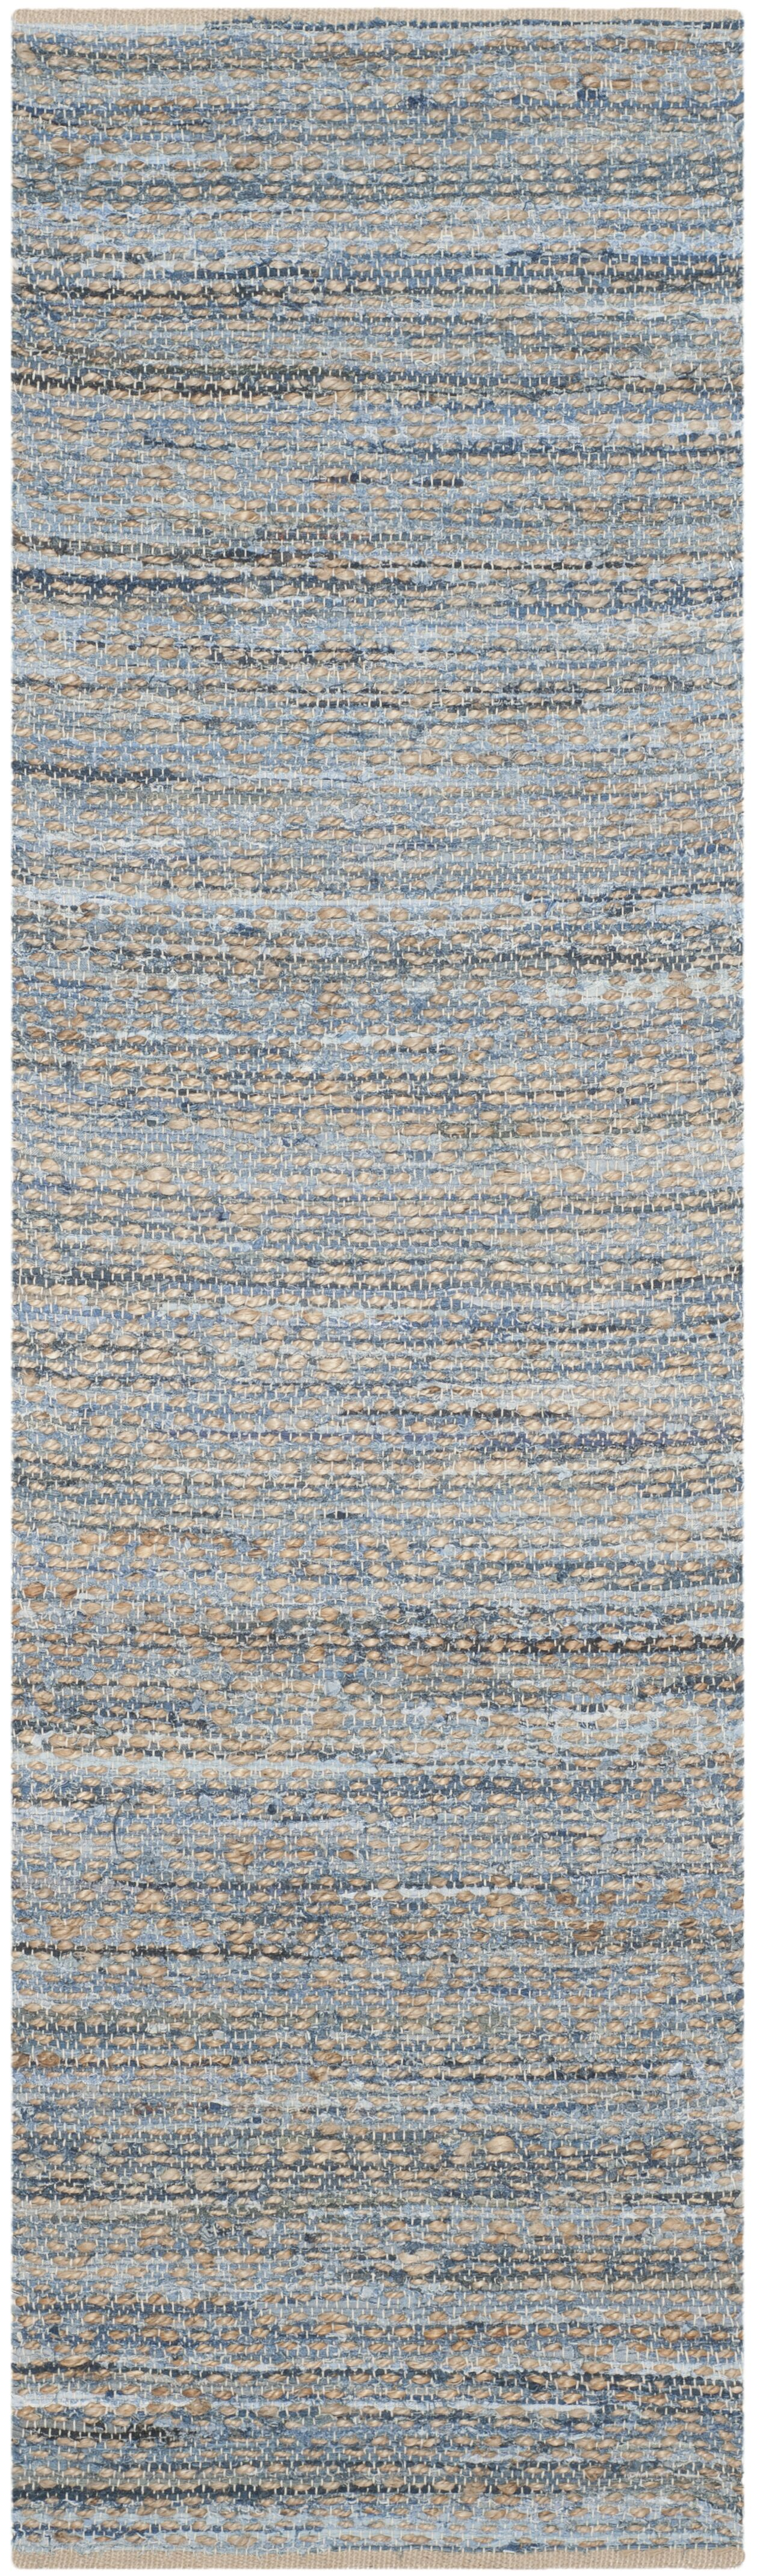 Gilchrist Hand-Woven Natural/Blue Area Rug Rug Size: Runner 2'3